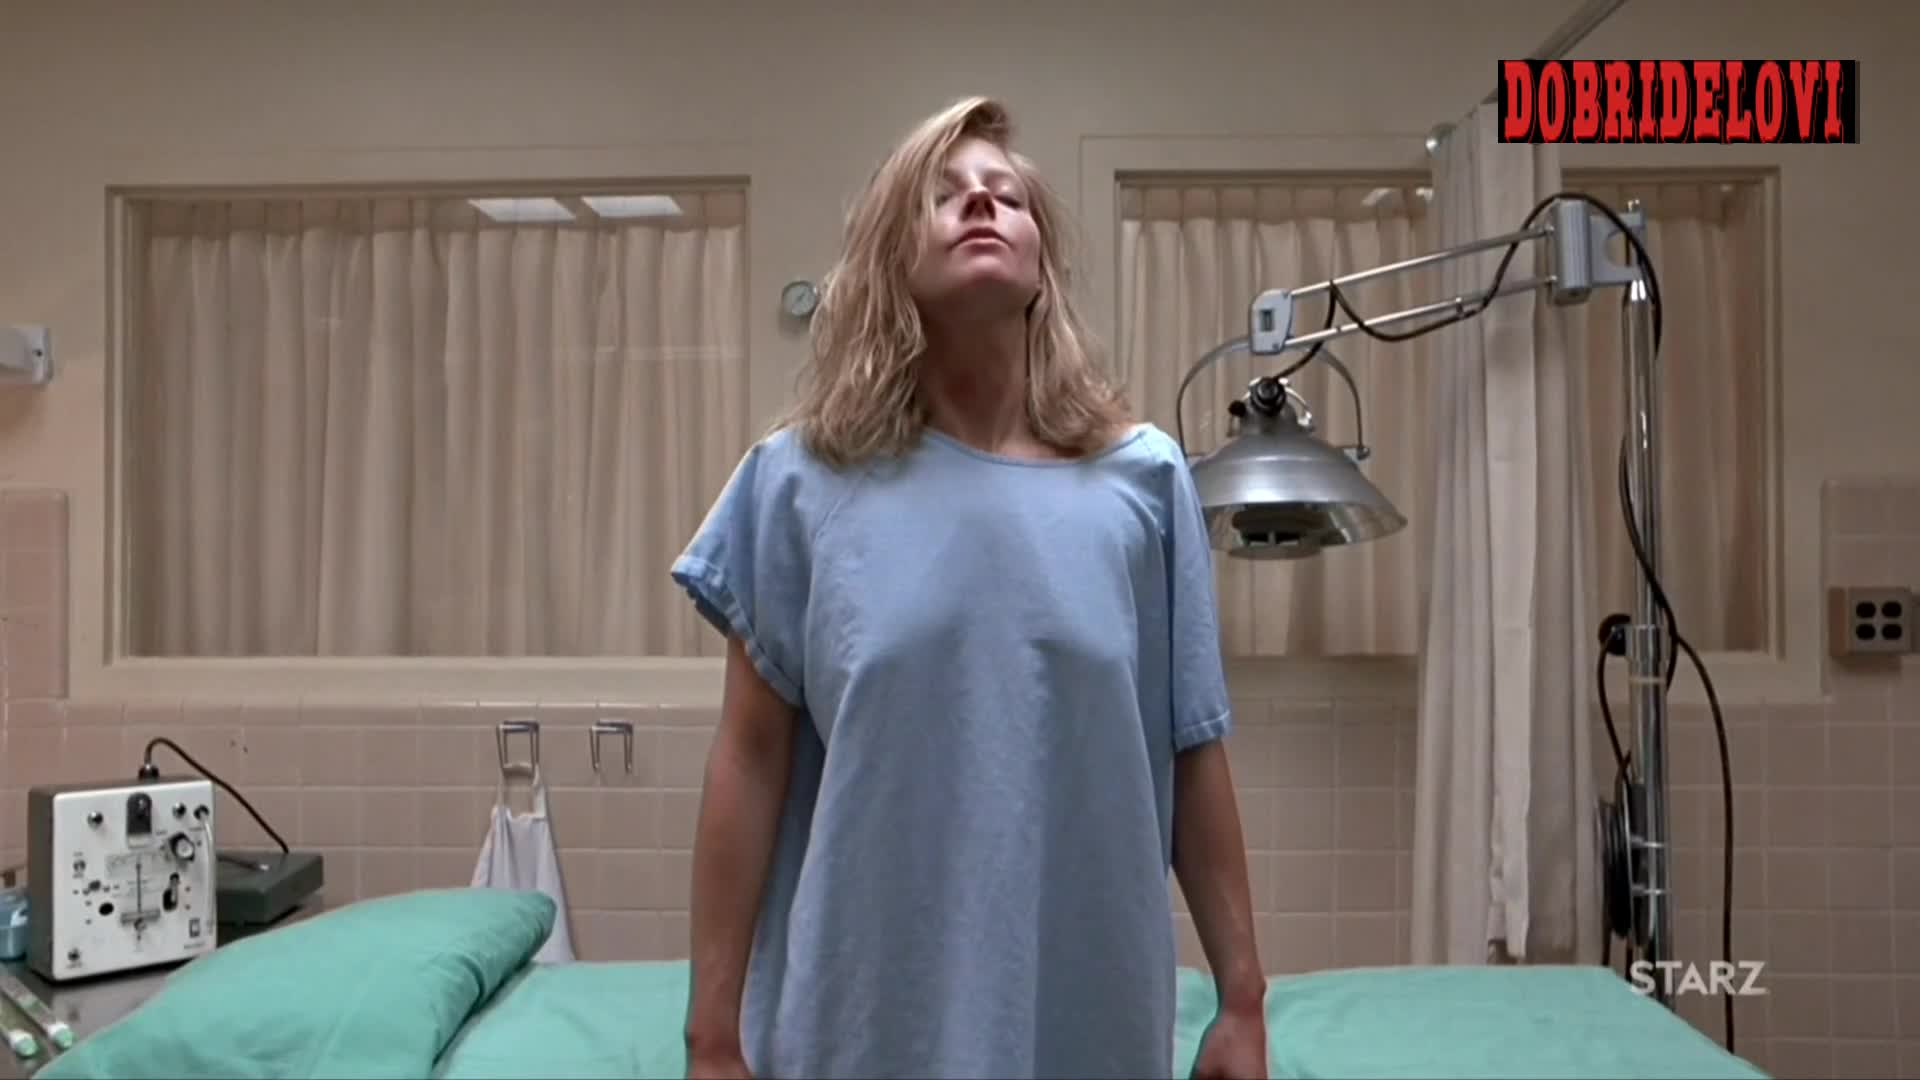 Jodie Foster in the doctor's office scene from The Accused